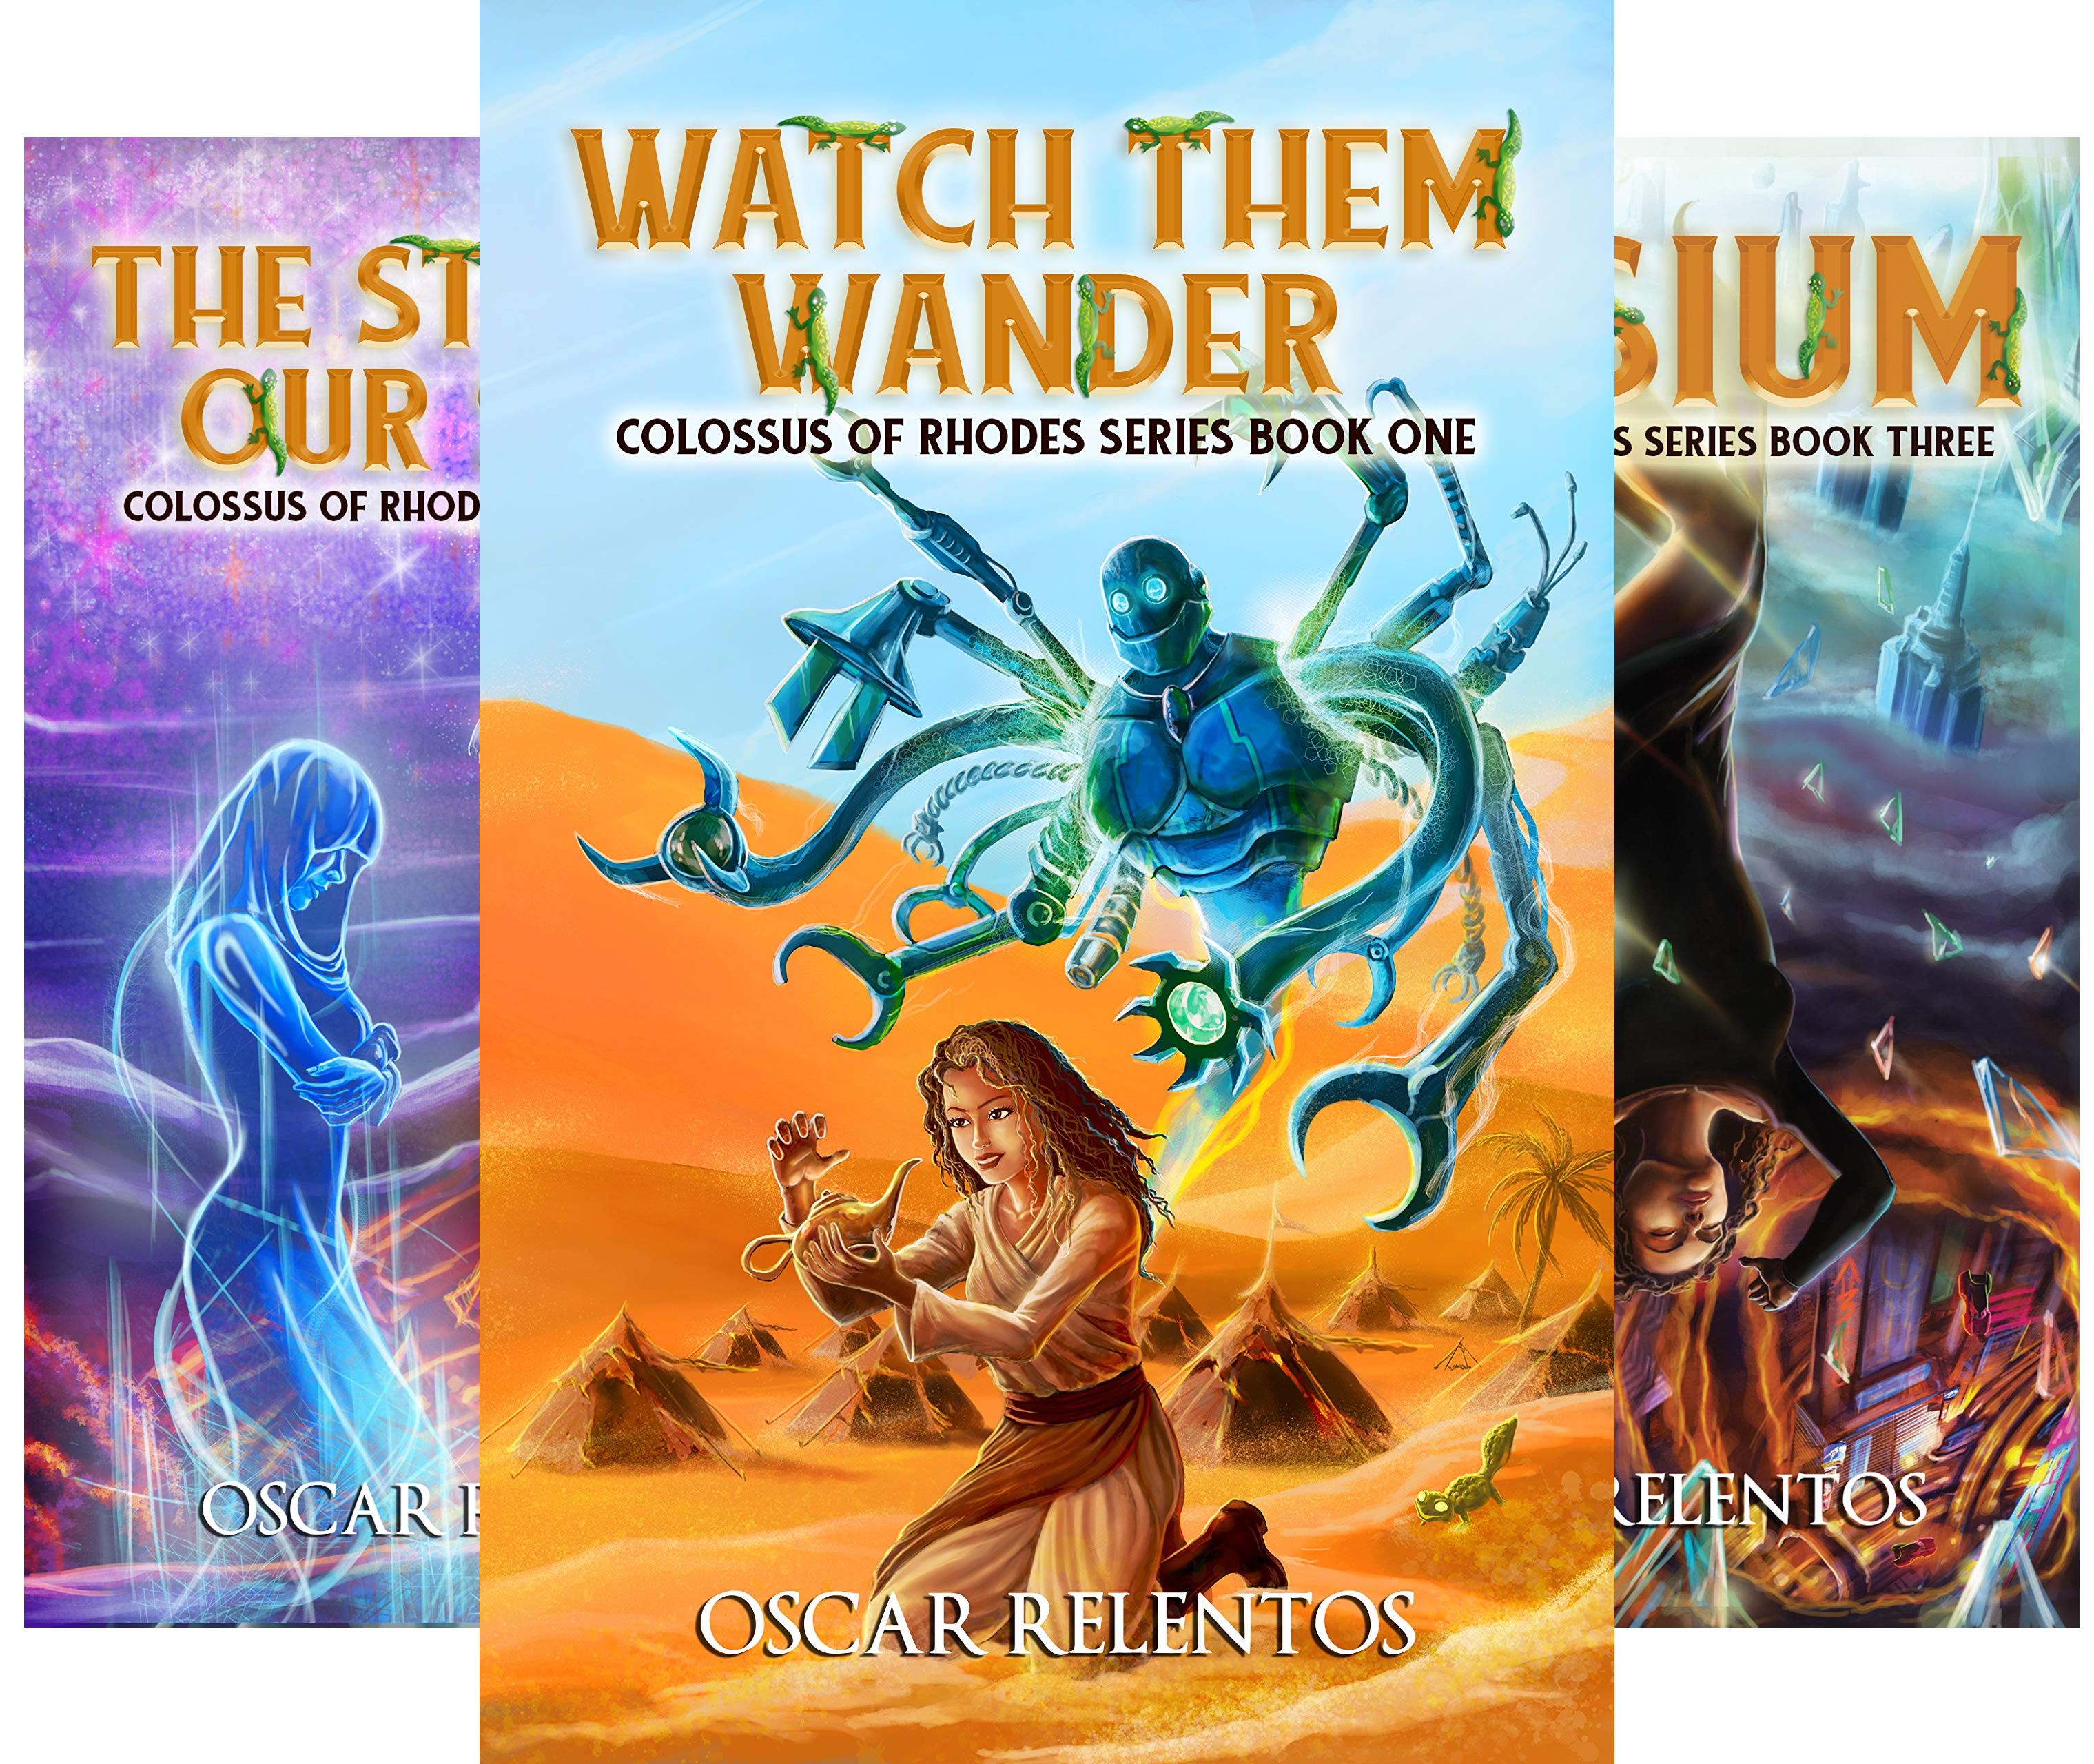 Colossus of Rhodes Series (3 Book Series)